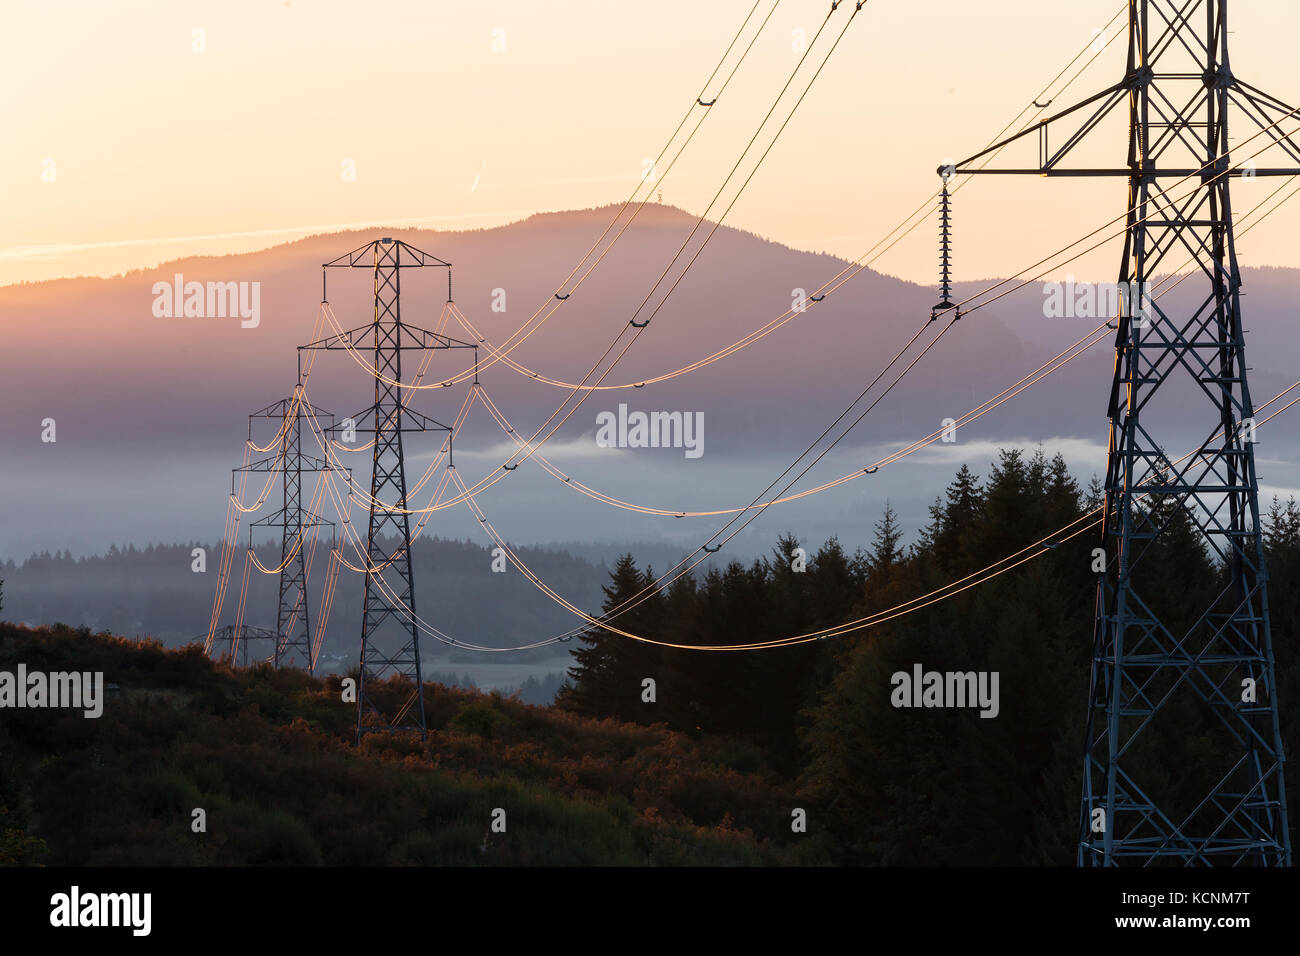 High tension power lines are illuminated by an early morning sunrise.  Duncan, Vancouver Island, British Columbia, - Stock Image